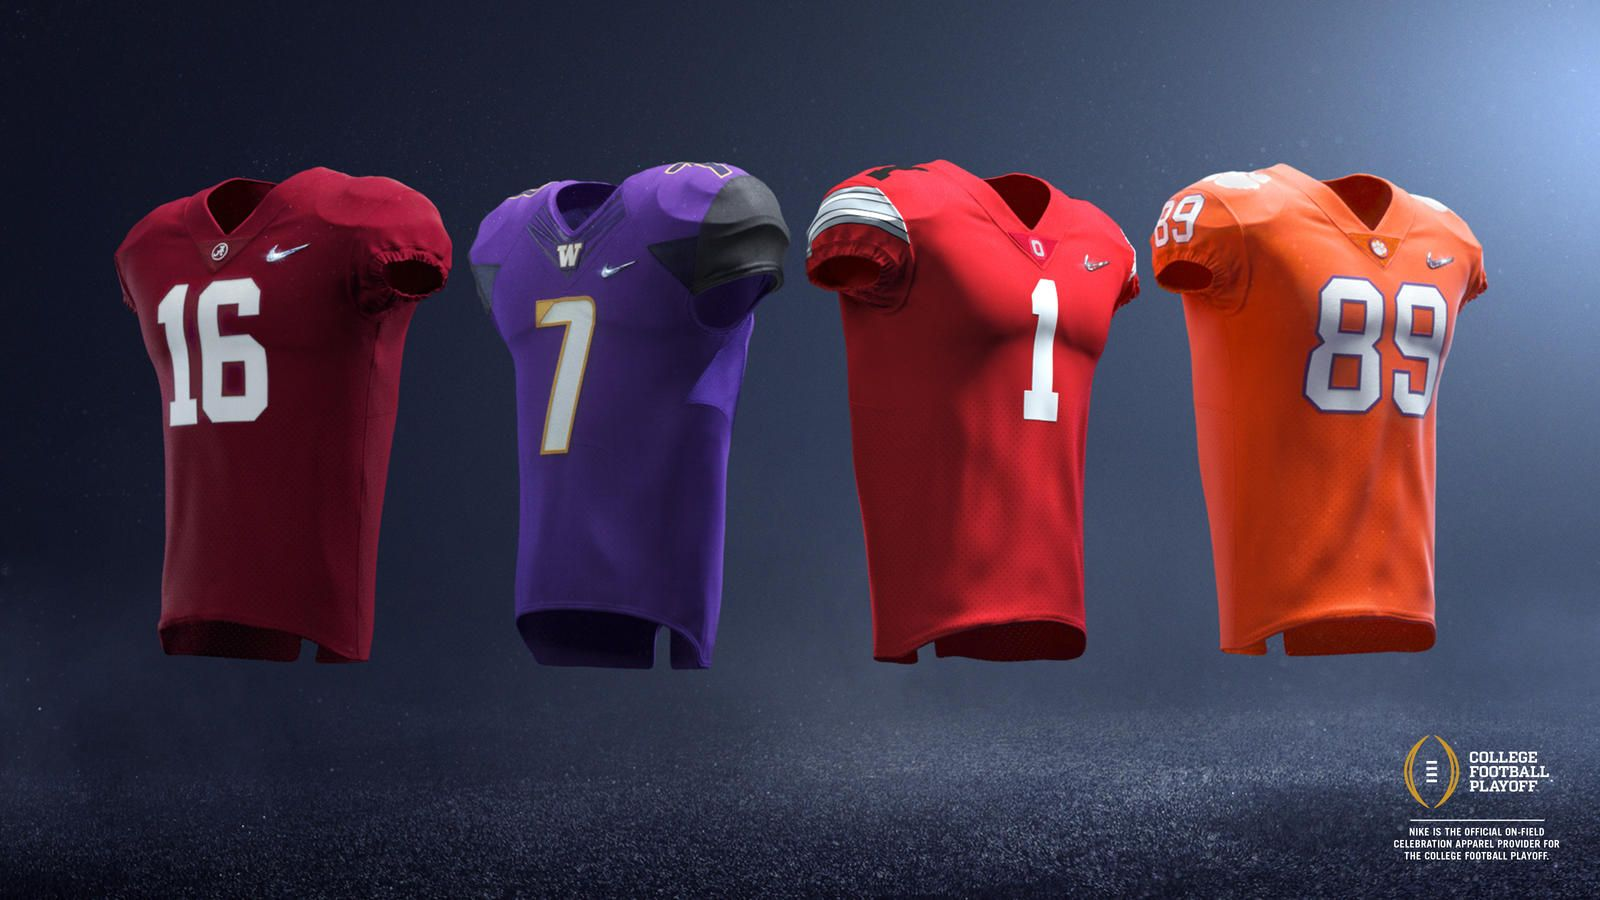 Nike News - Nike Dominates the College Football Playoff